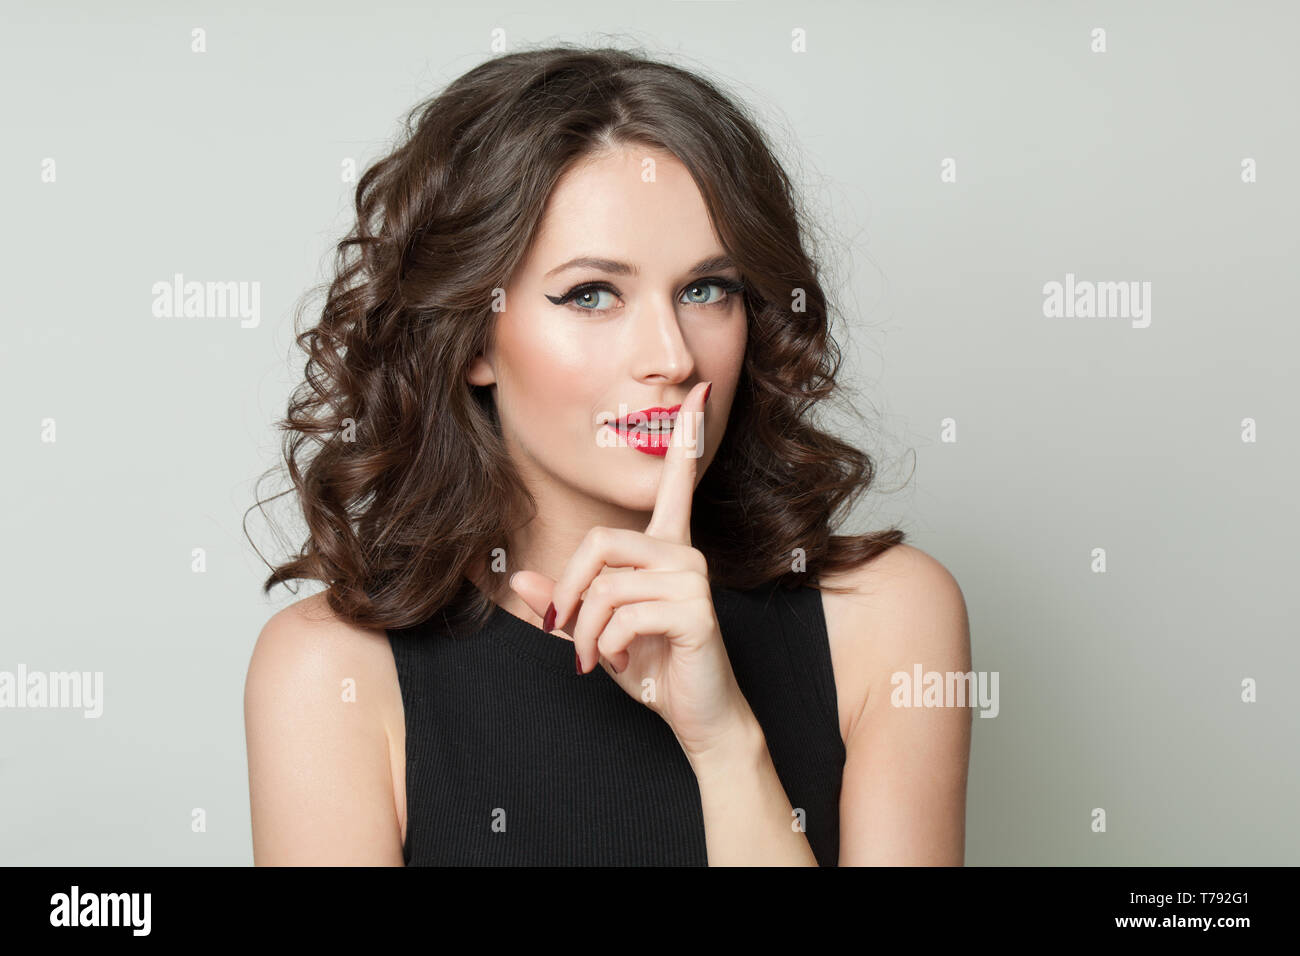 Pretty woman showing a sign of silence. Shh! Womens secrets. - Stock Image